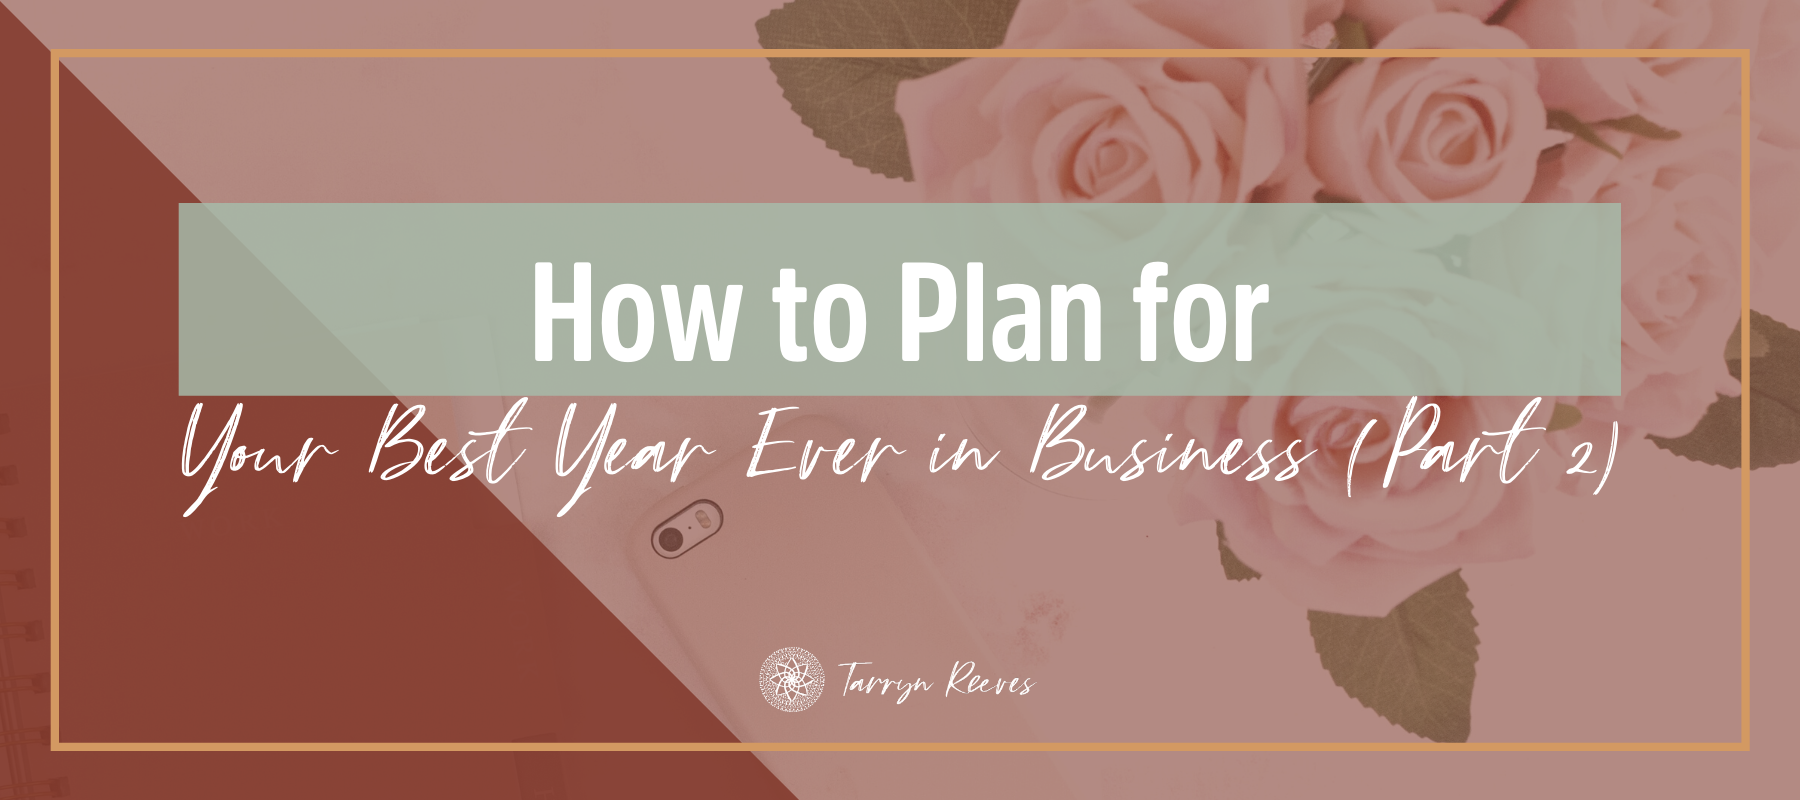 Look At The Big Picture in Business: How To Plan For Your Best Year Ever, Part 2